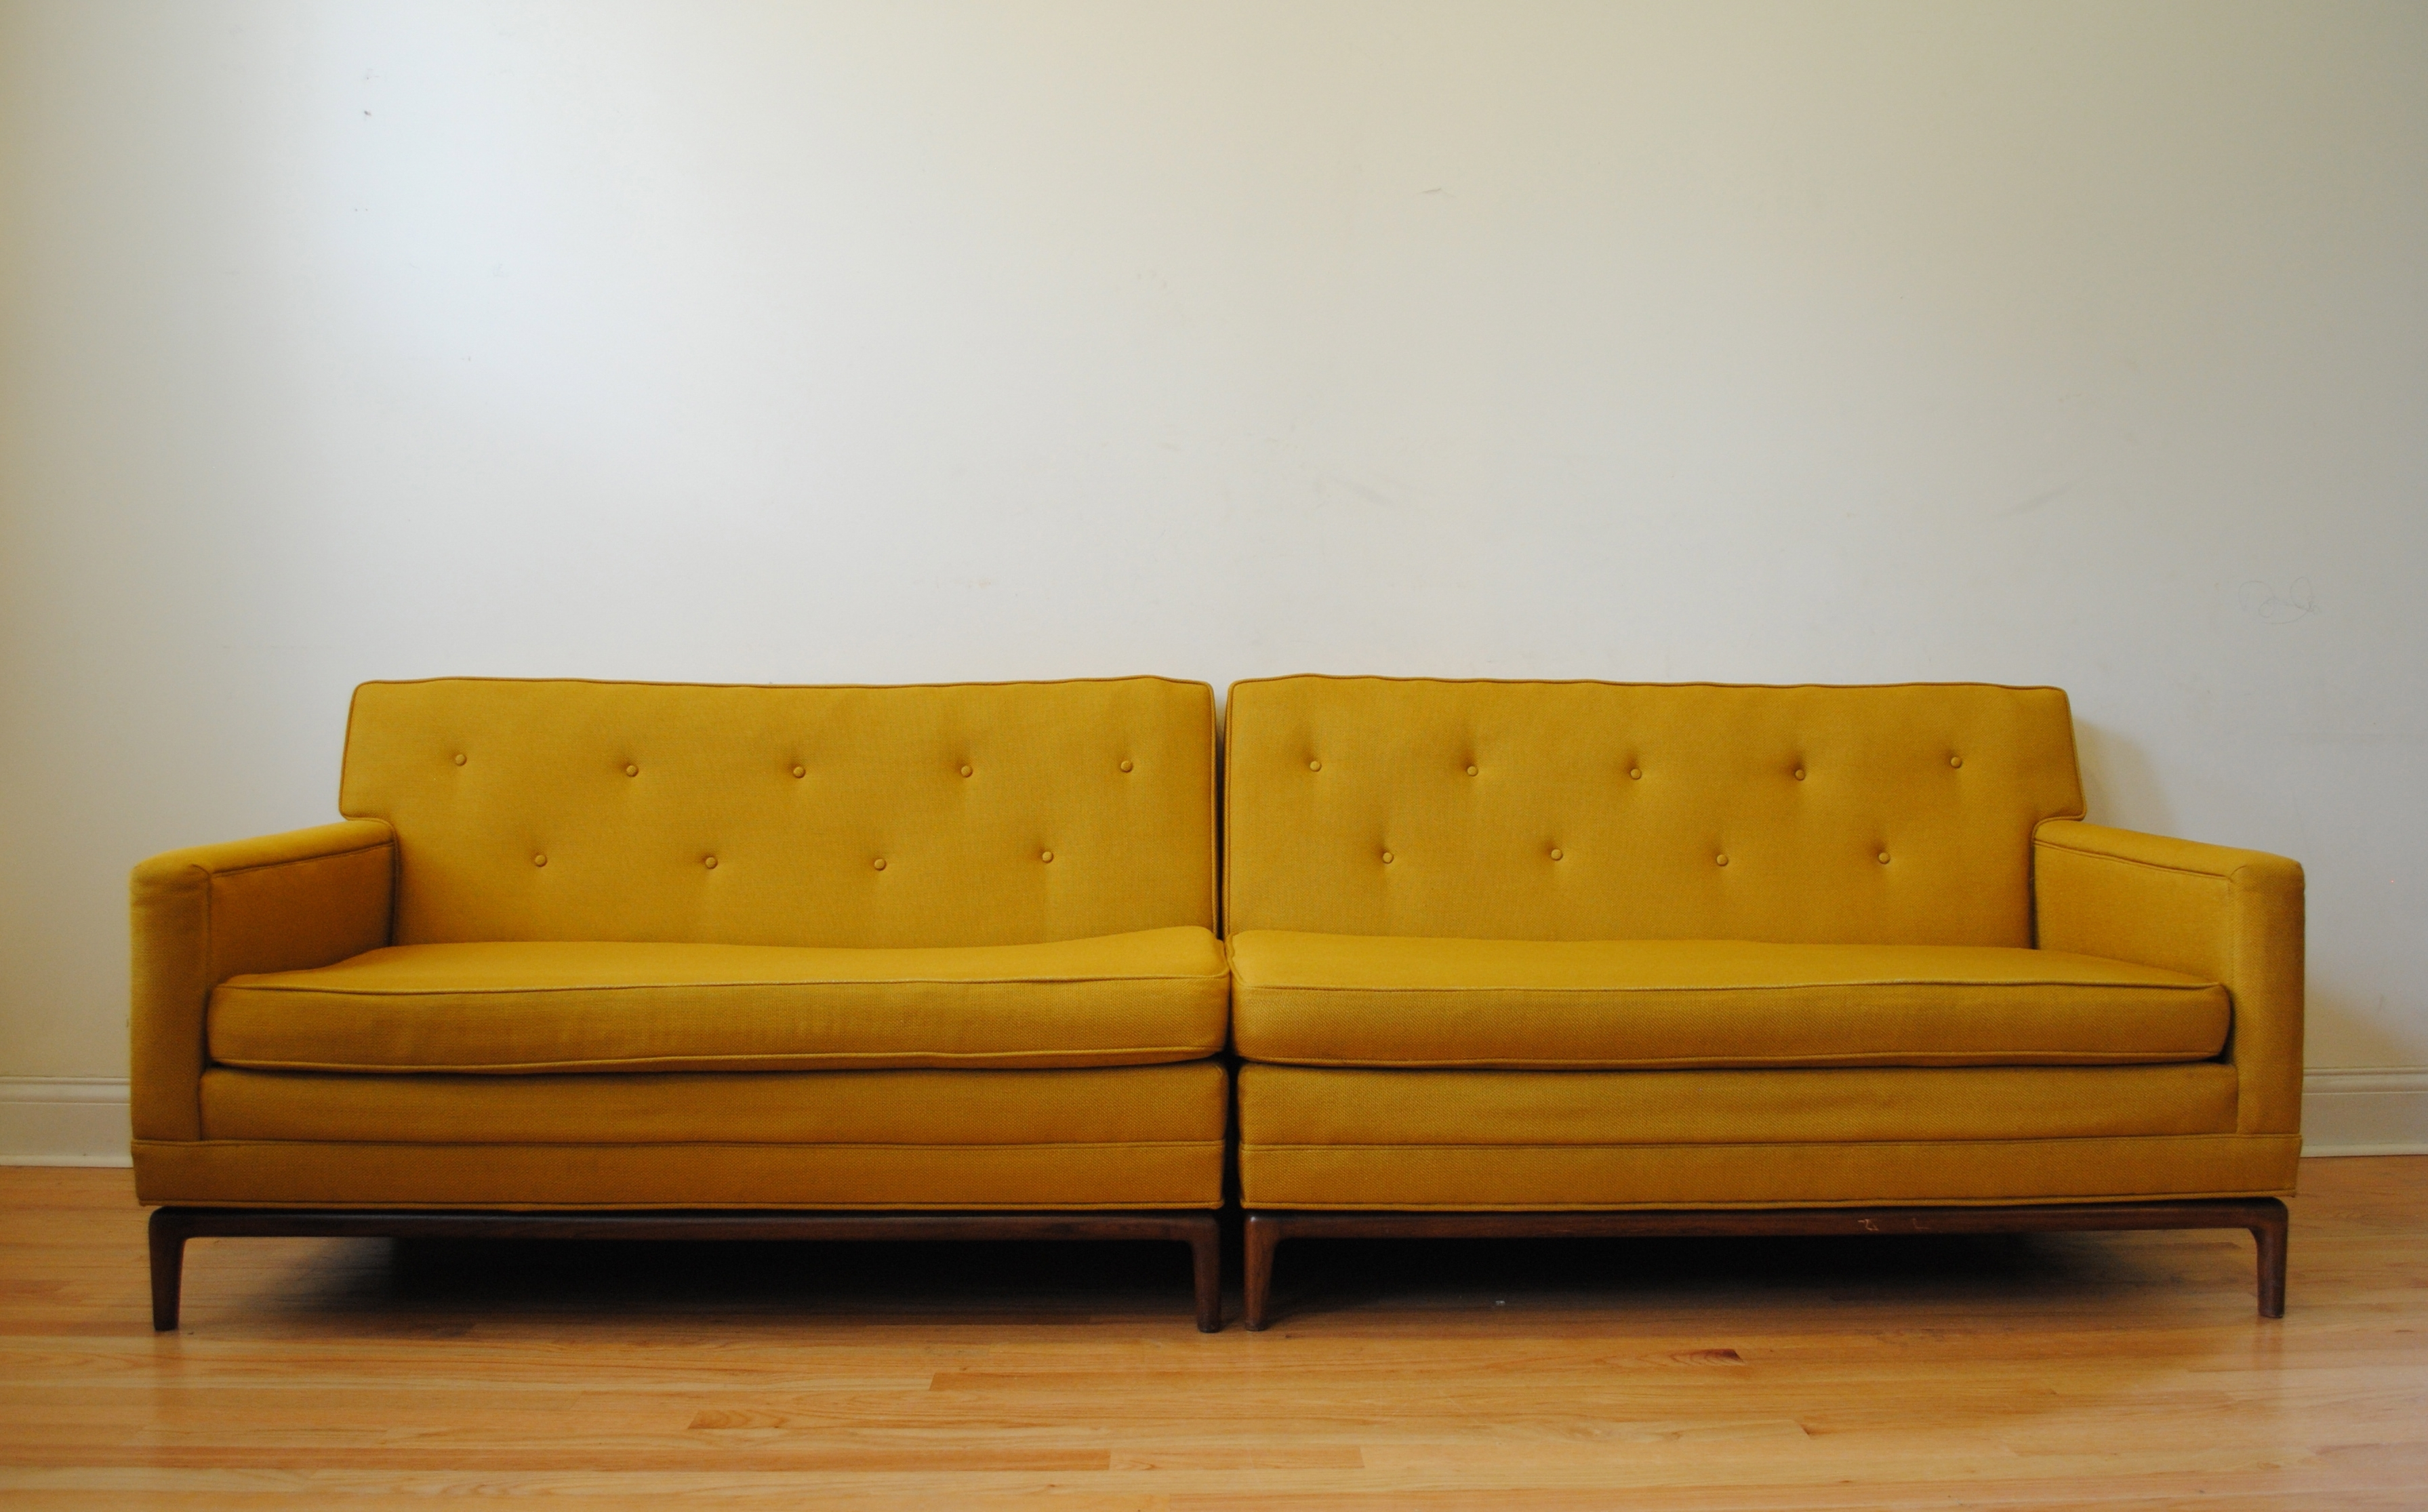 Most Recent Long Modern Sofa – Home And Textiles Throughout Long Modern Sofas (View 5 of 15)